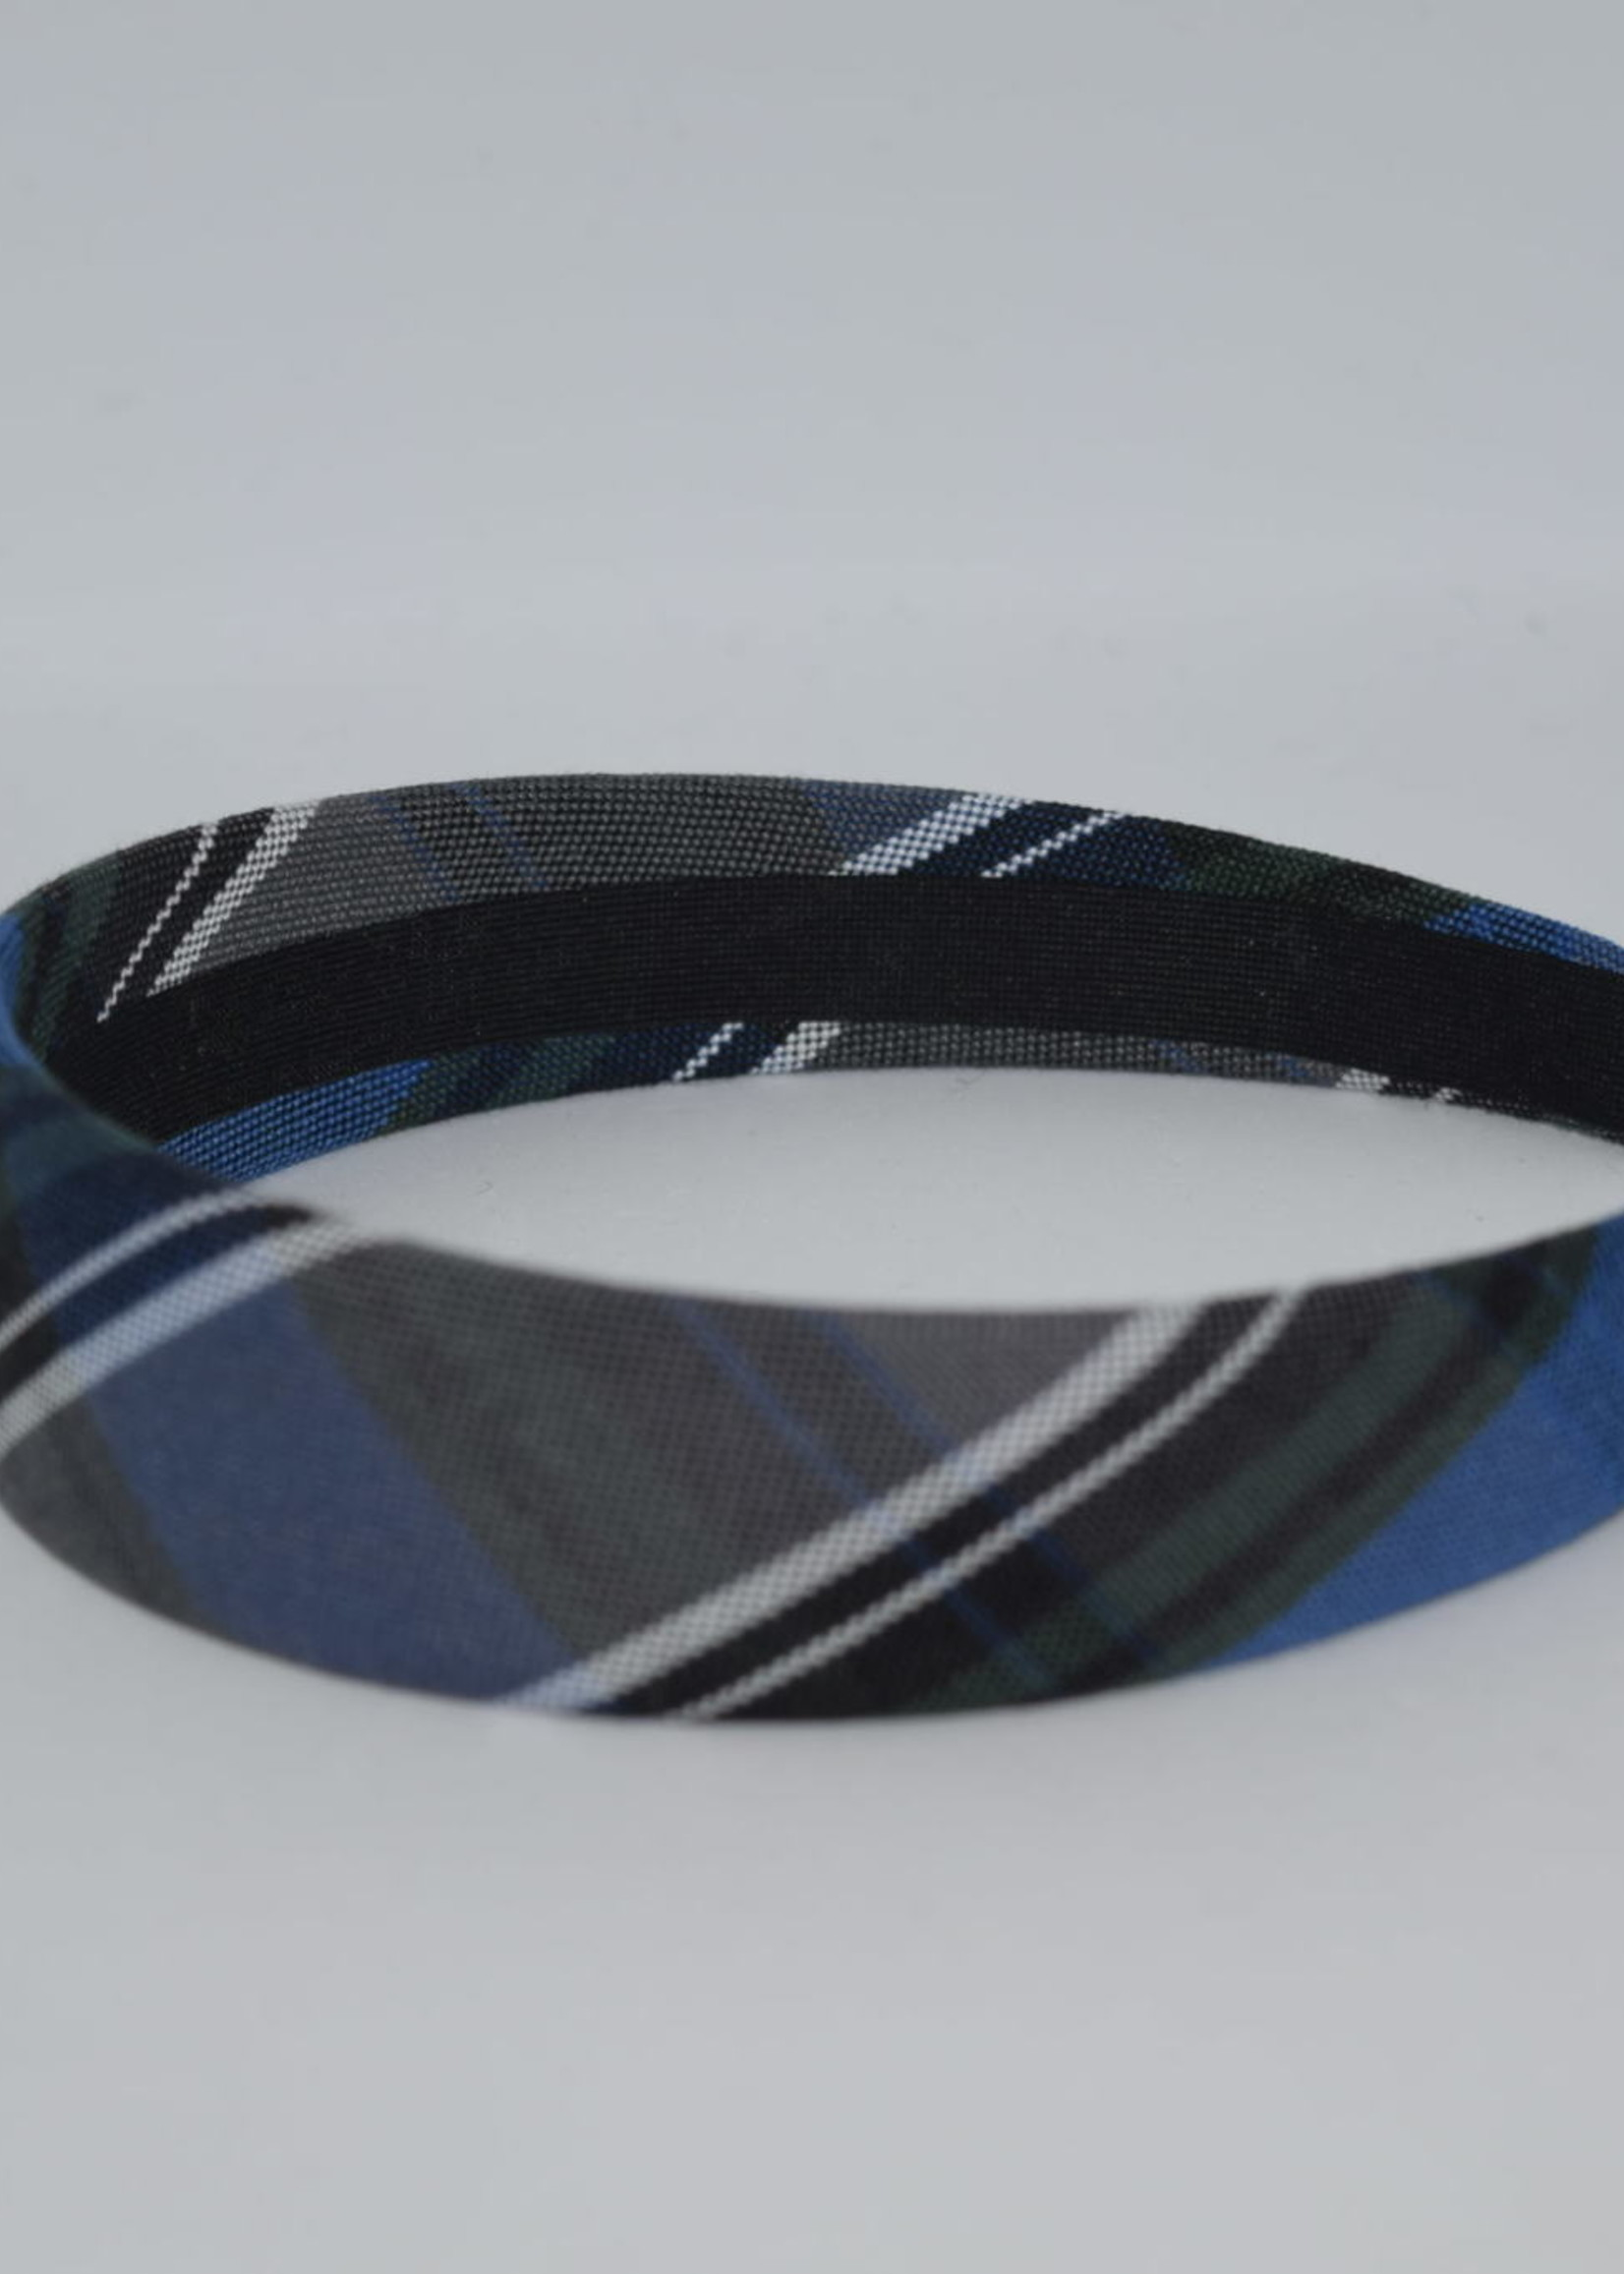 Wide padded headband w/out metal tips P32